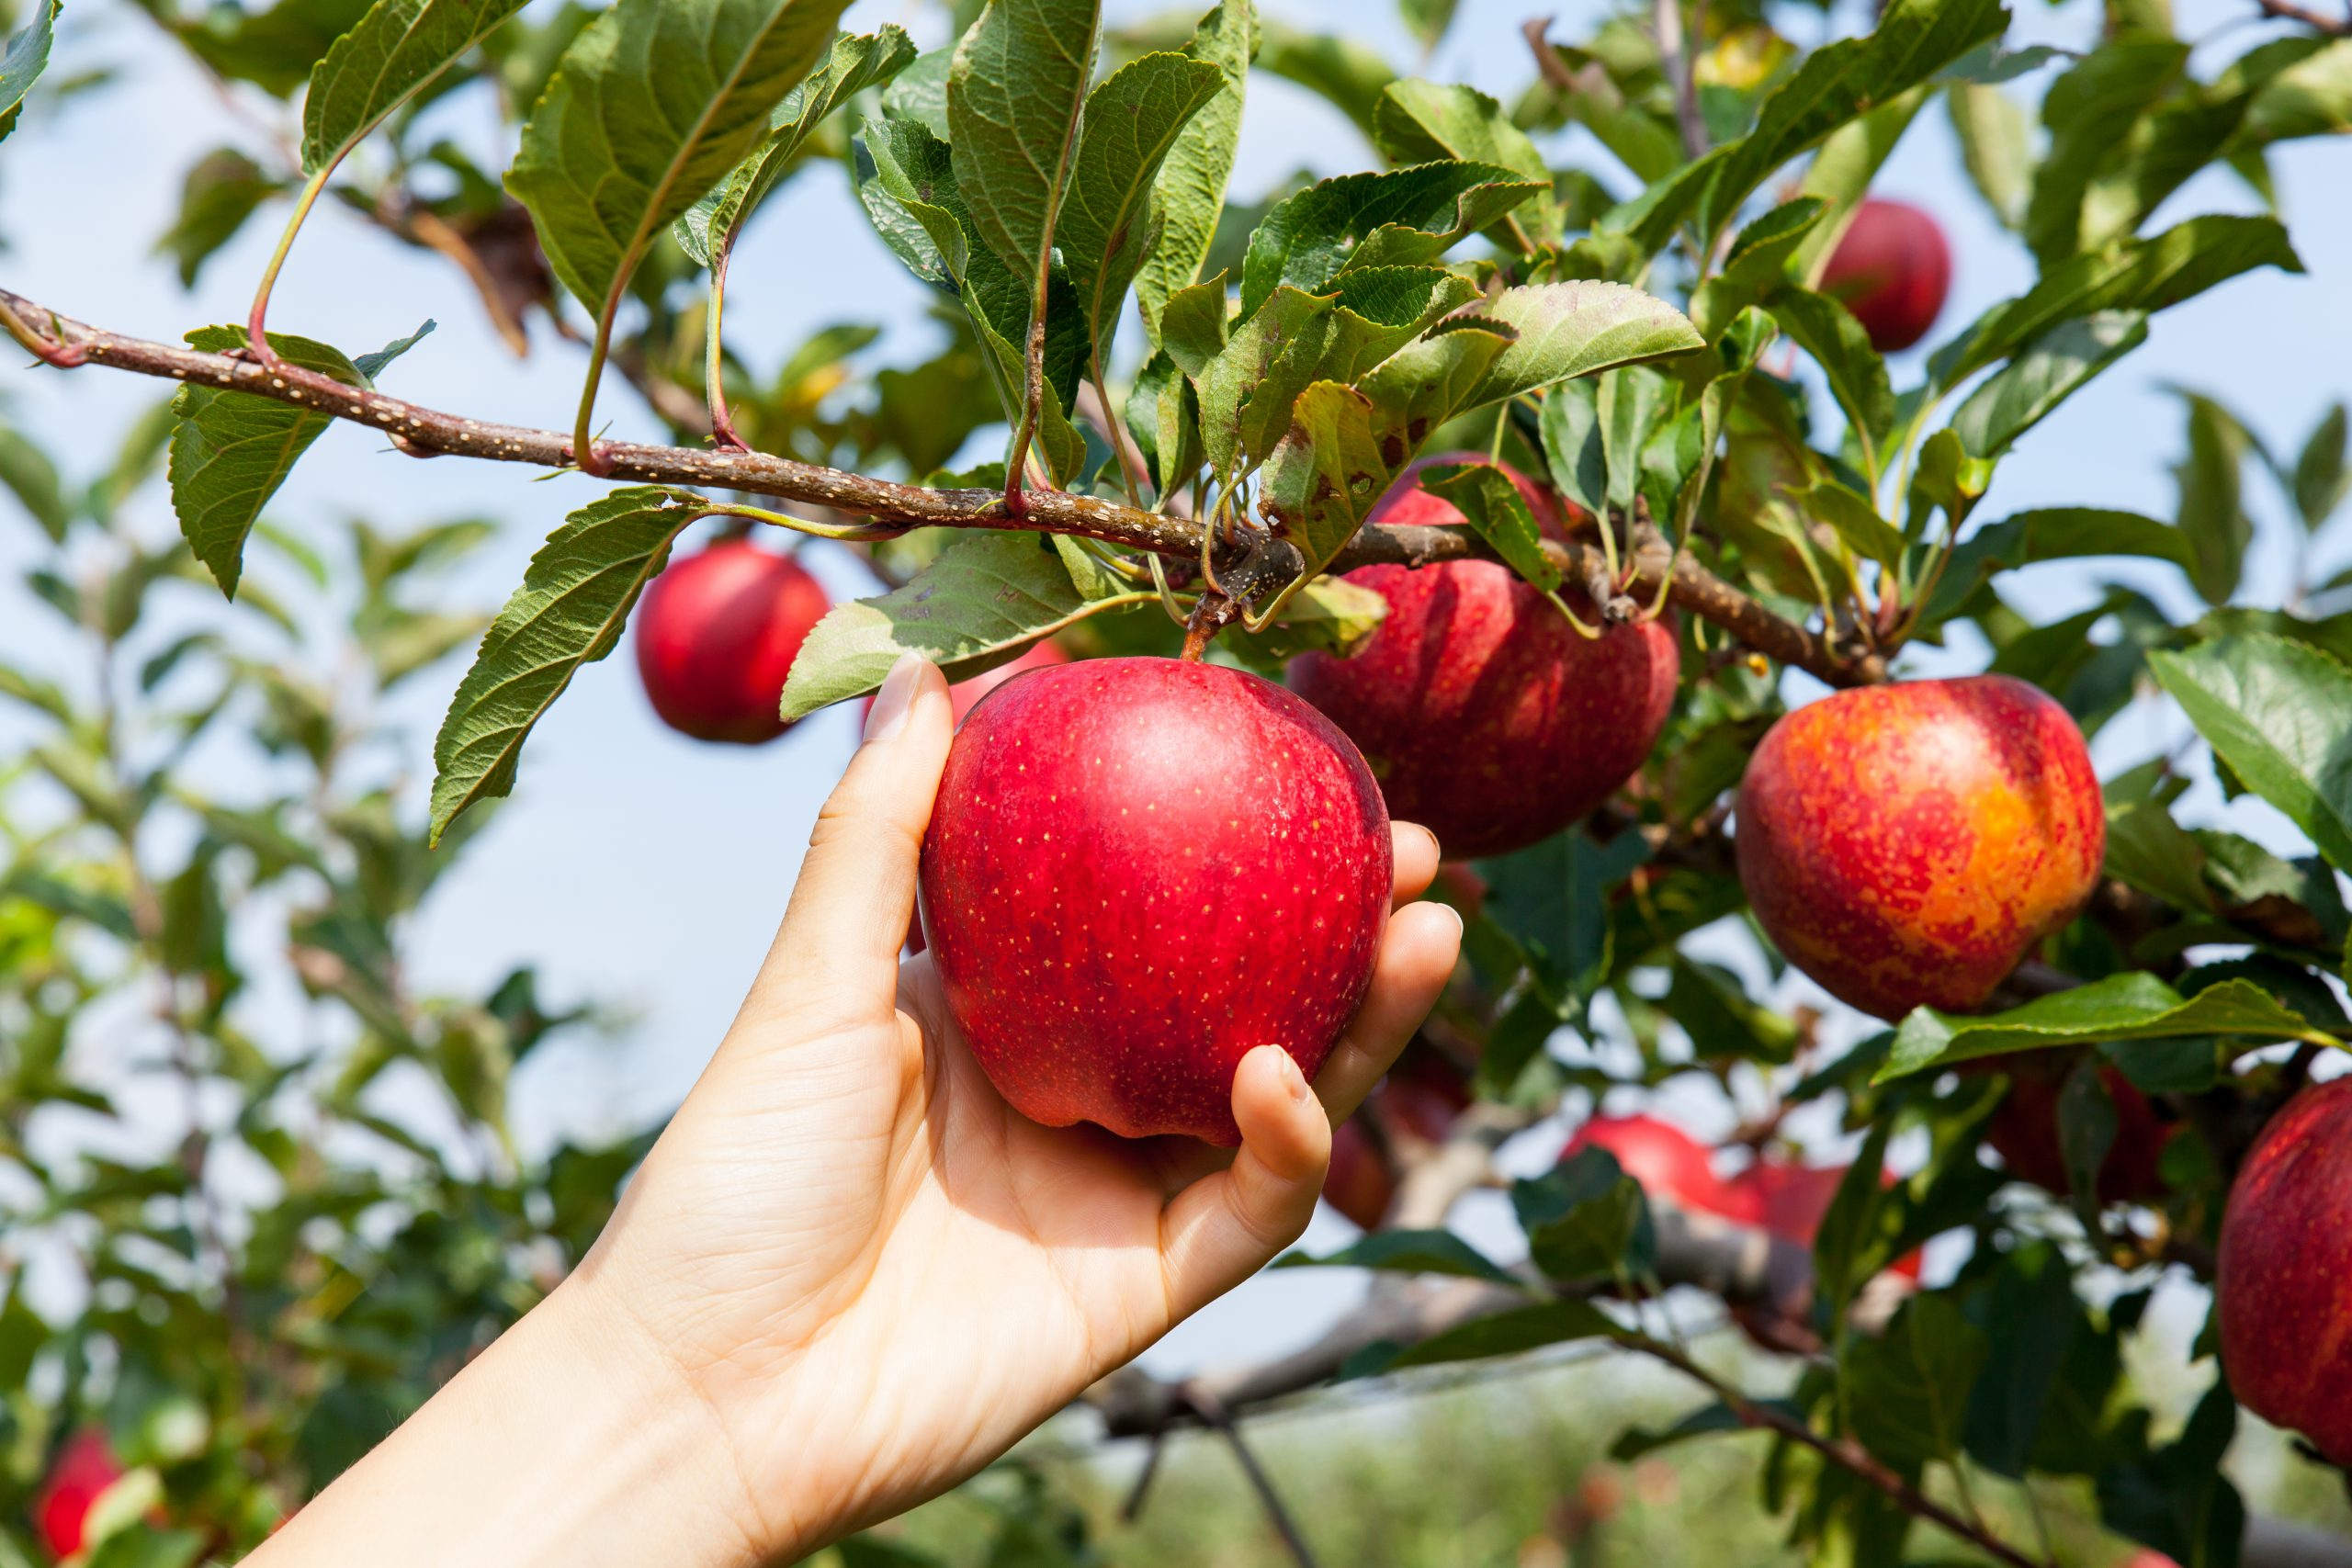 womans hand reaching out to pick apple texas apple orchards